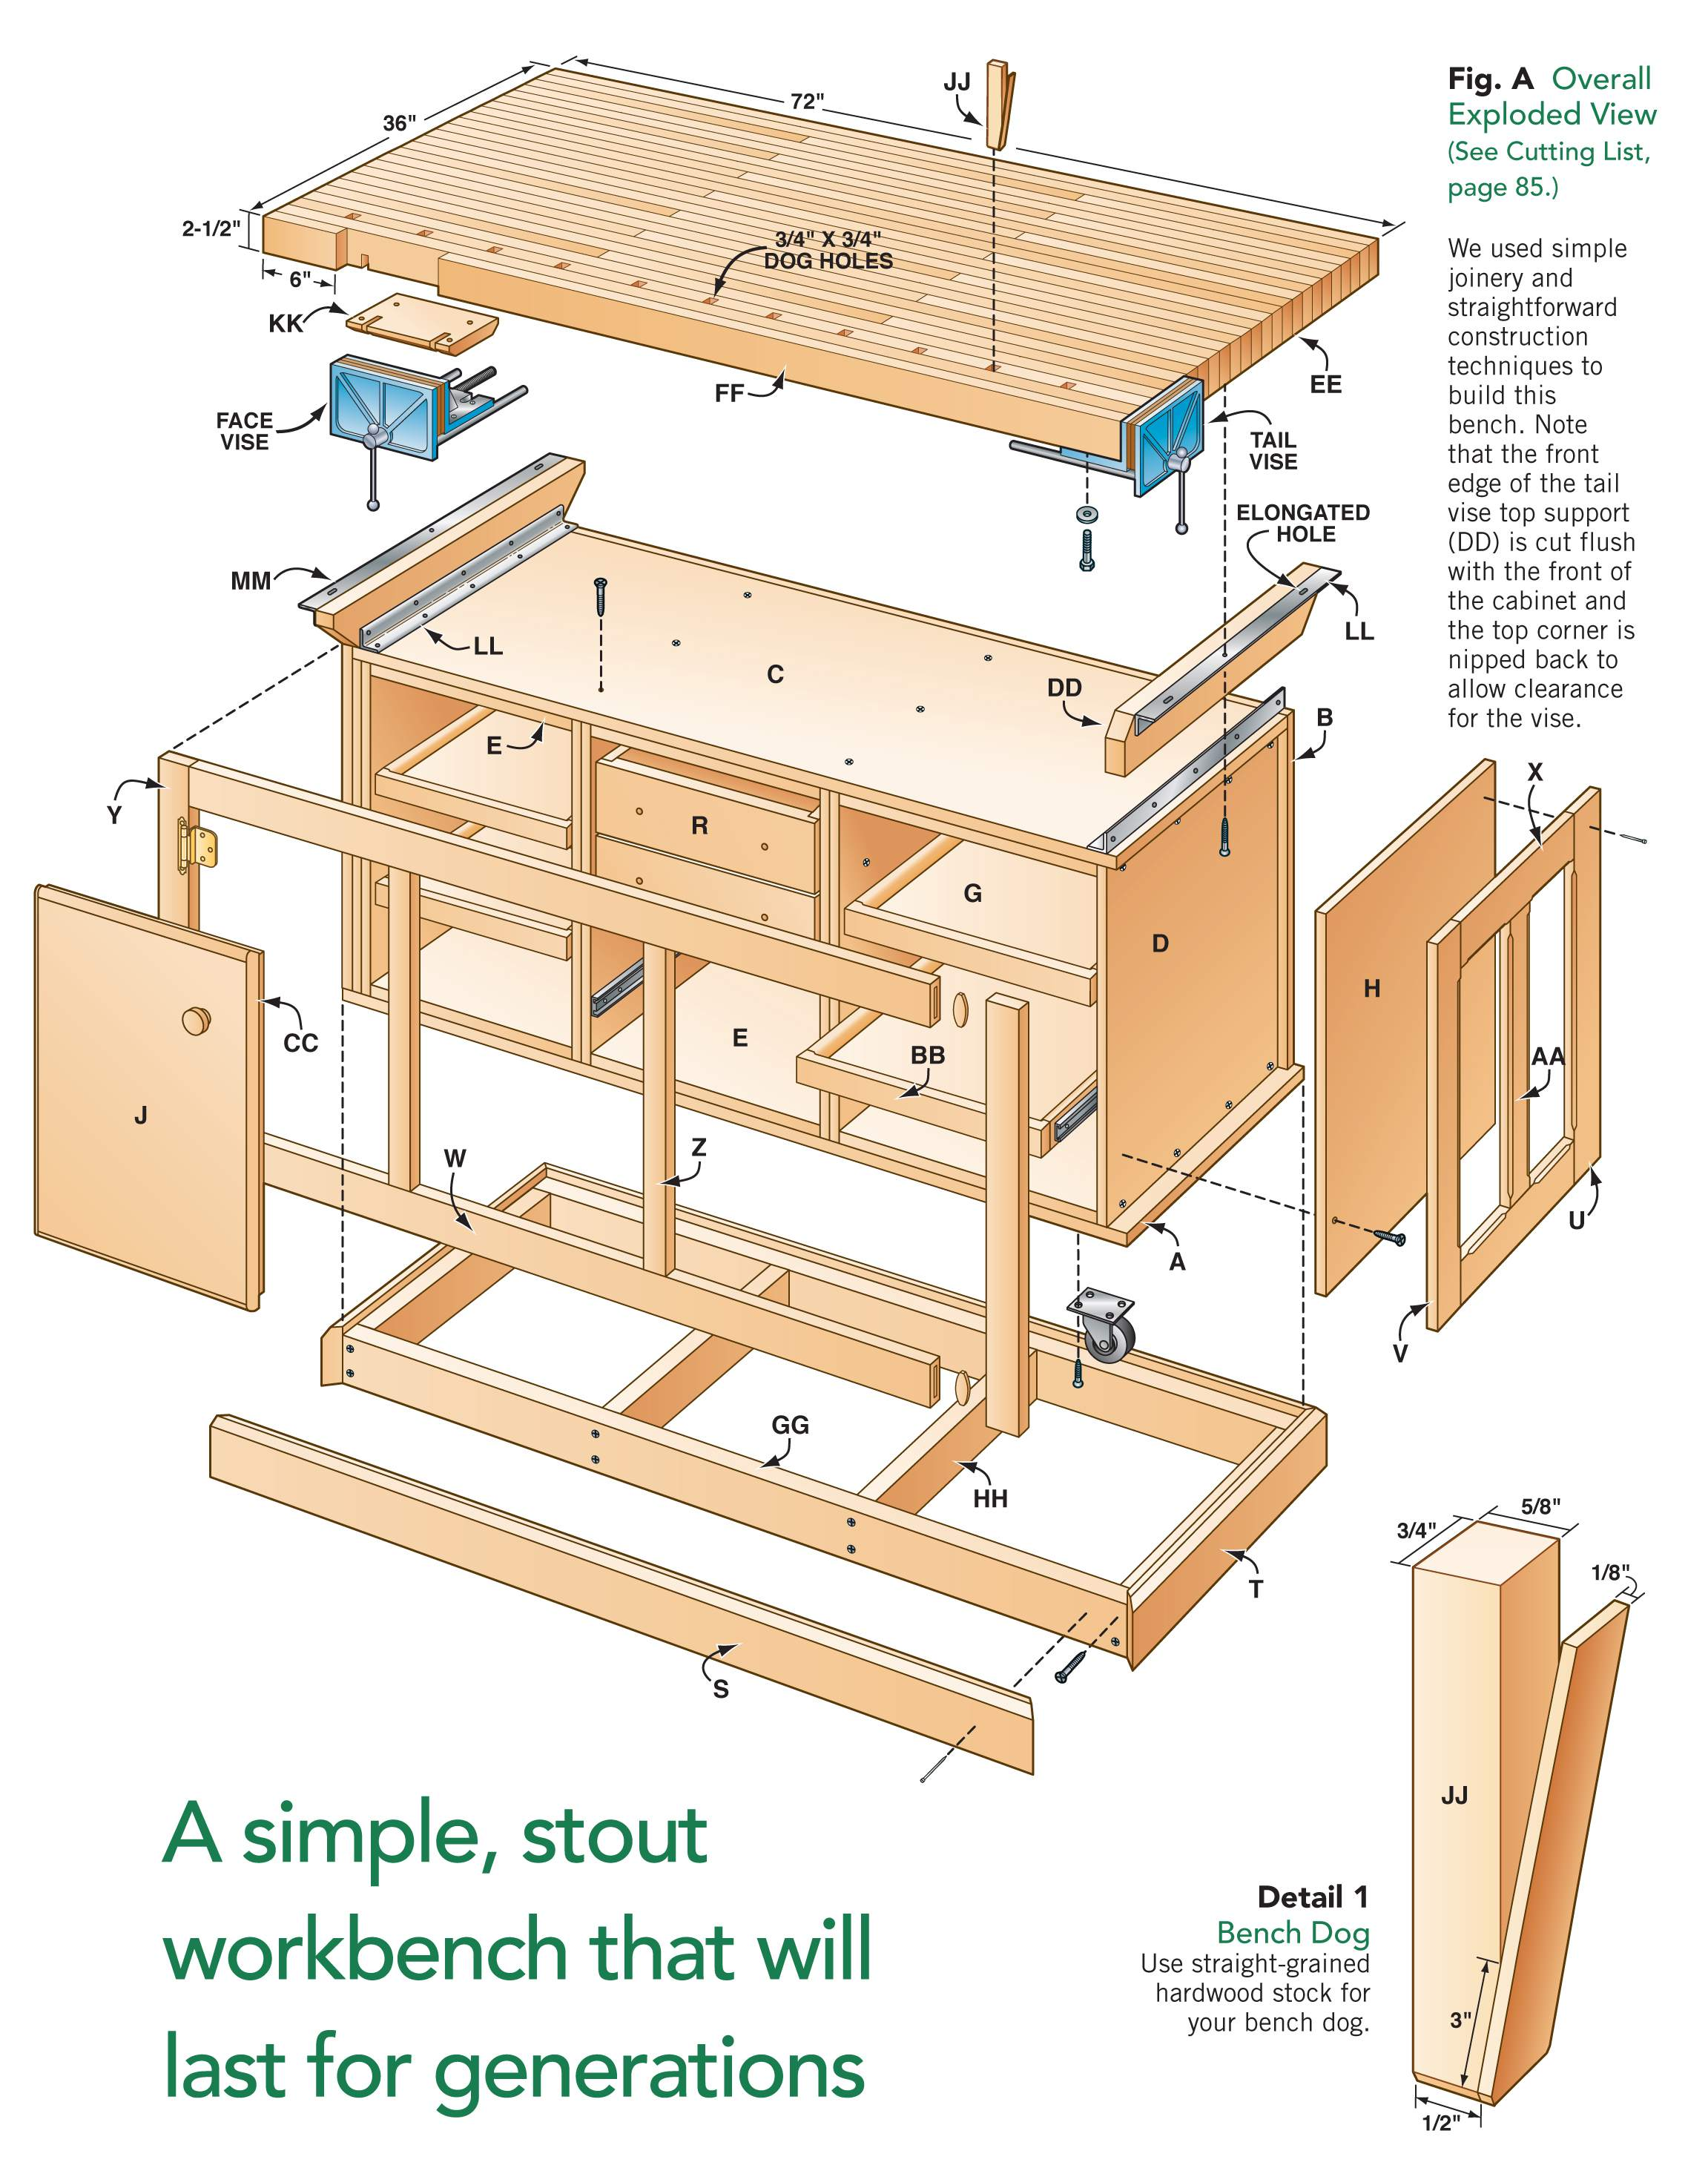 AW Extra - Dream Workbench - Popular Woodworking Magazine